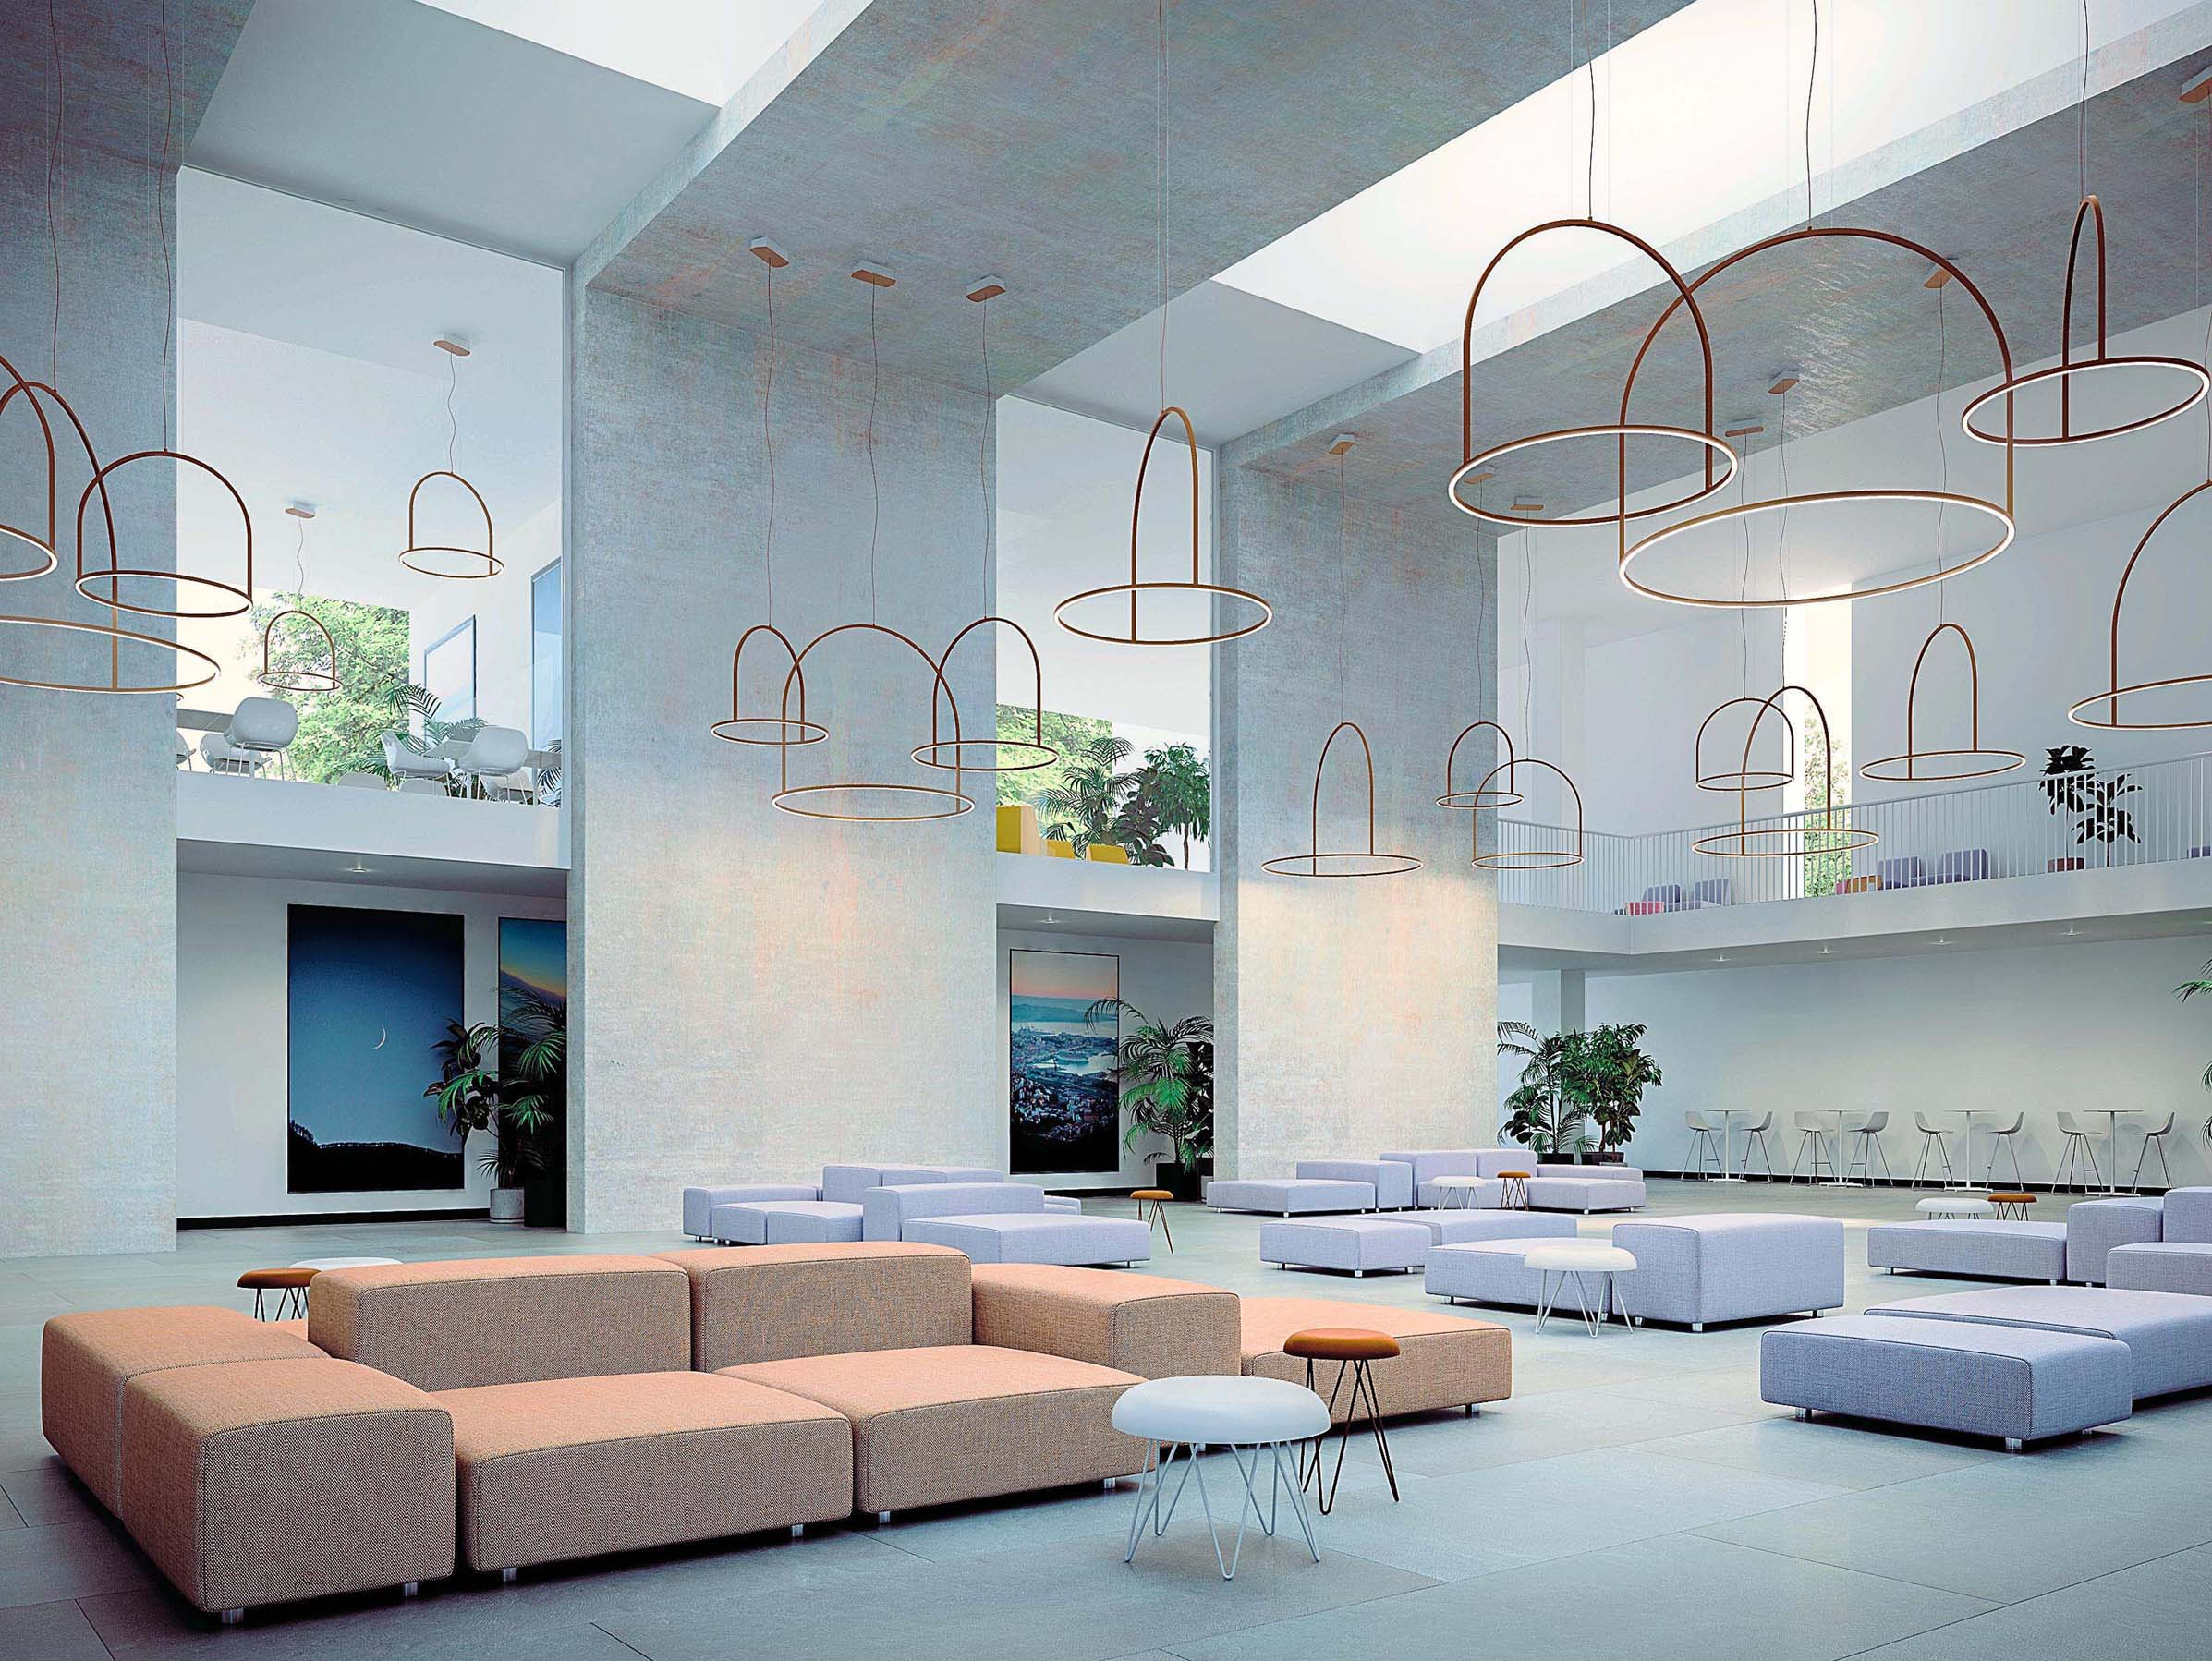 Product Set The Mood With Diverse Interior Lighting